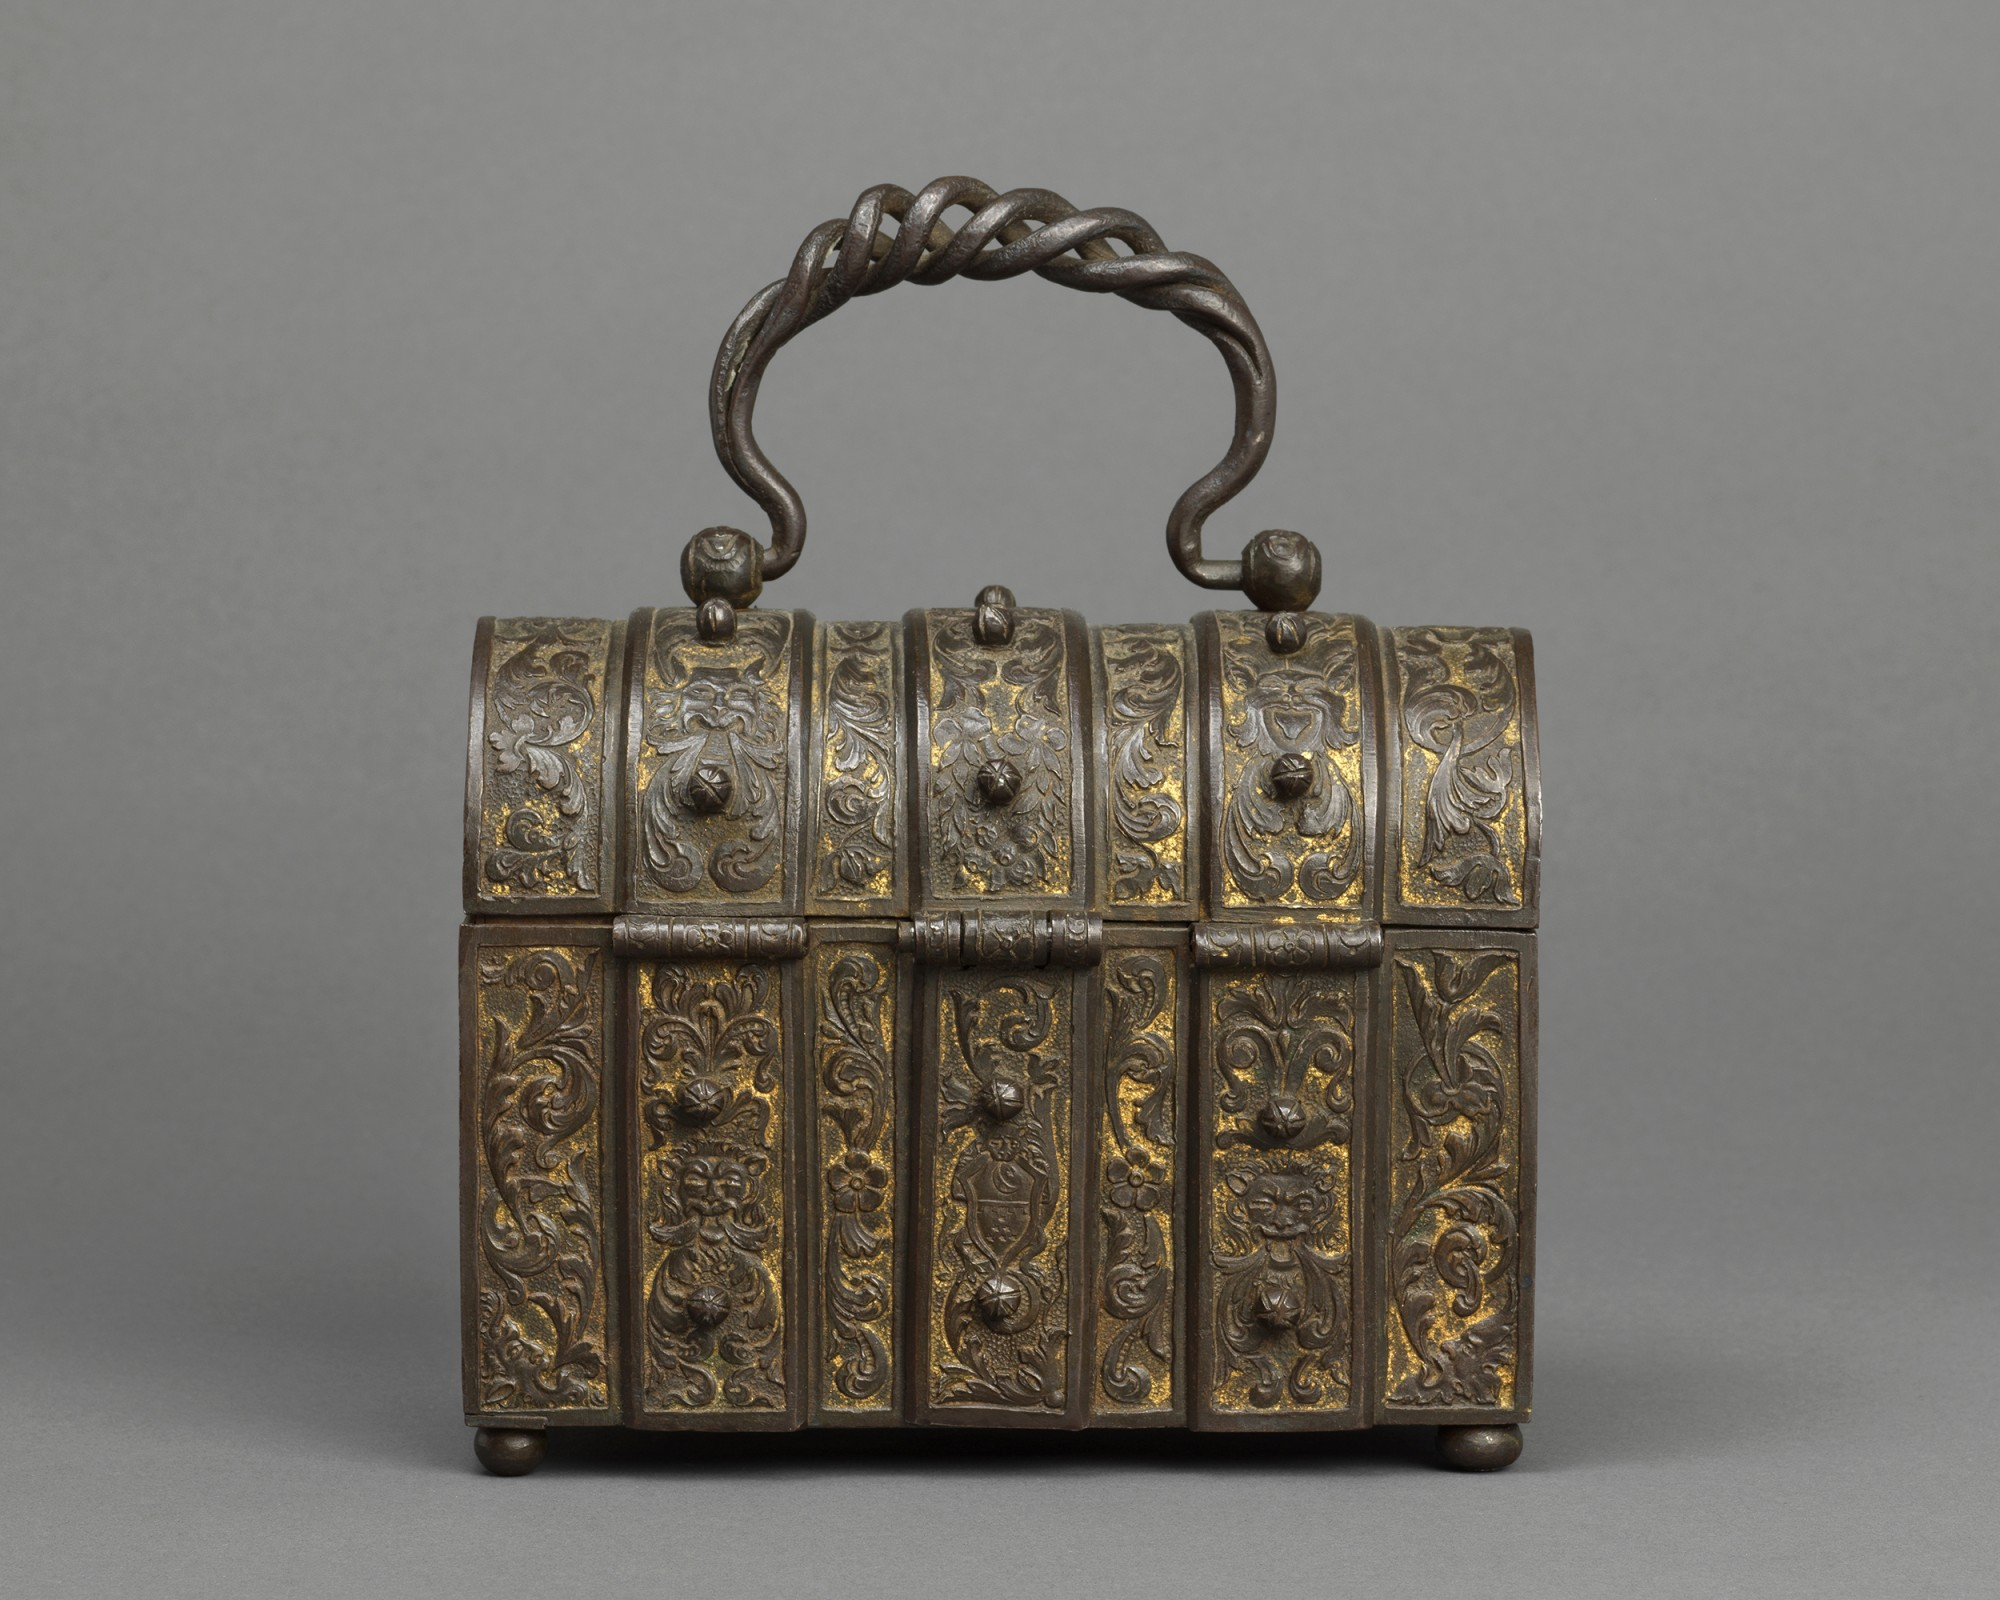 Casket, Italy, Lombardy, second half 16th century